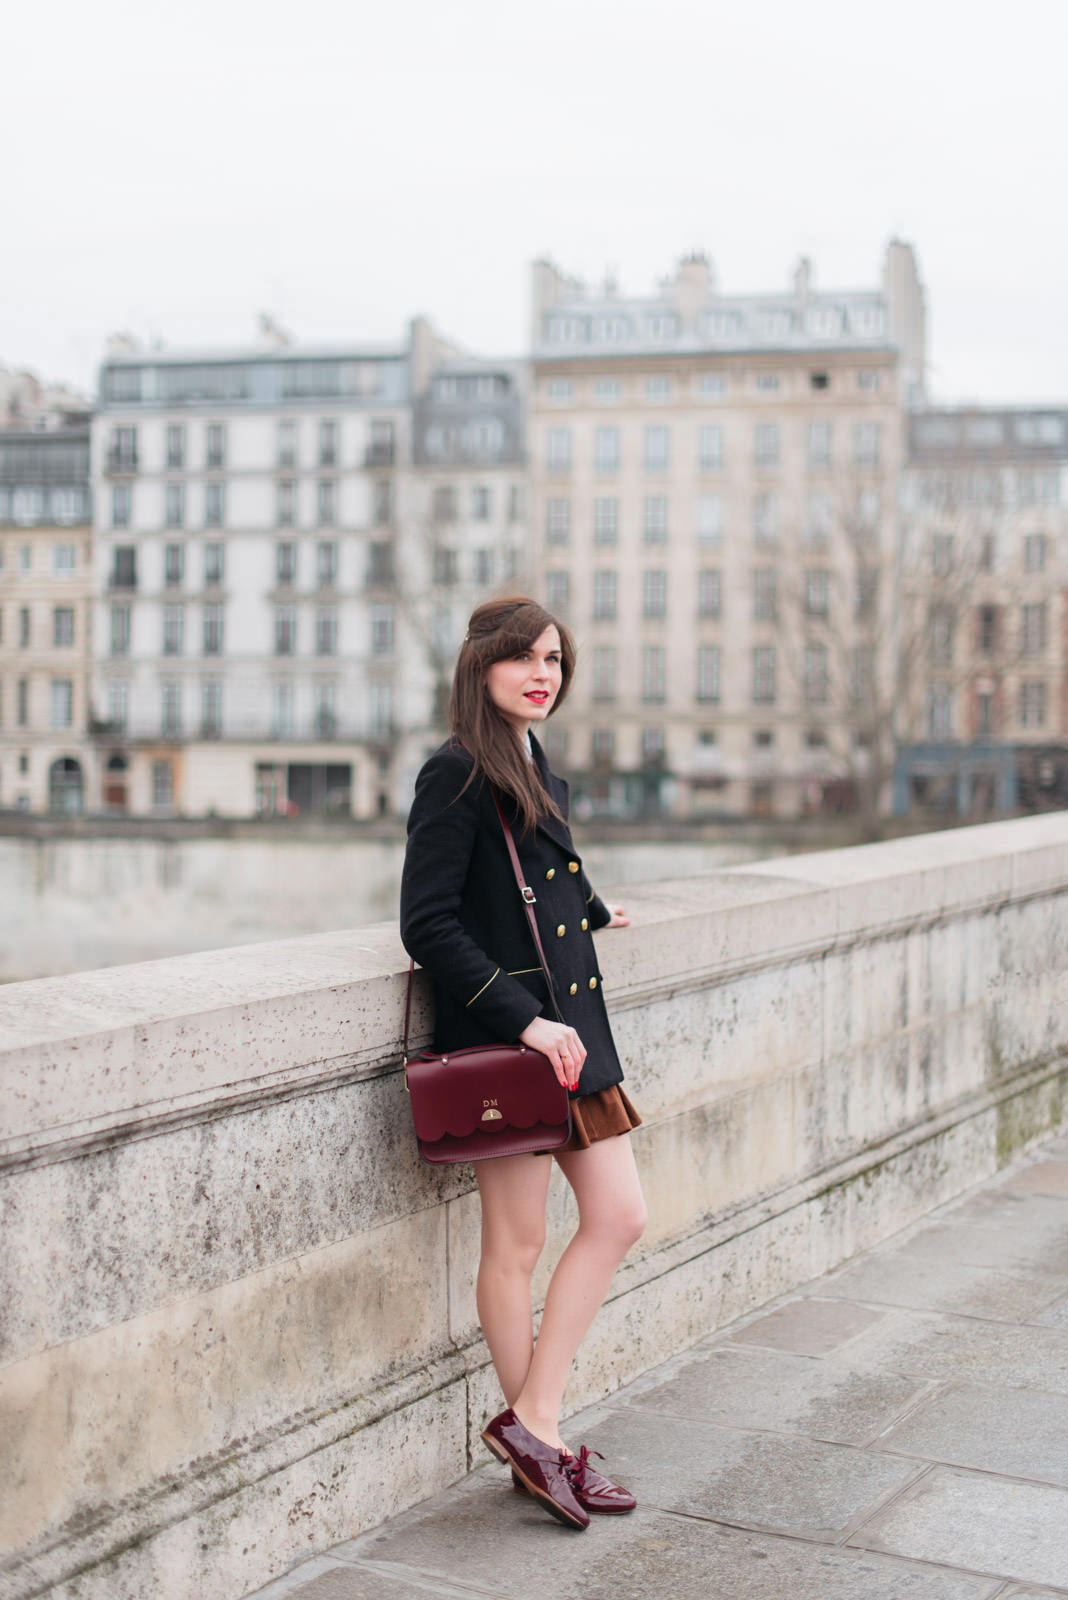 Blog-Mode-And-The-City-Looks-Le-reconfort-des-basiques-3